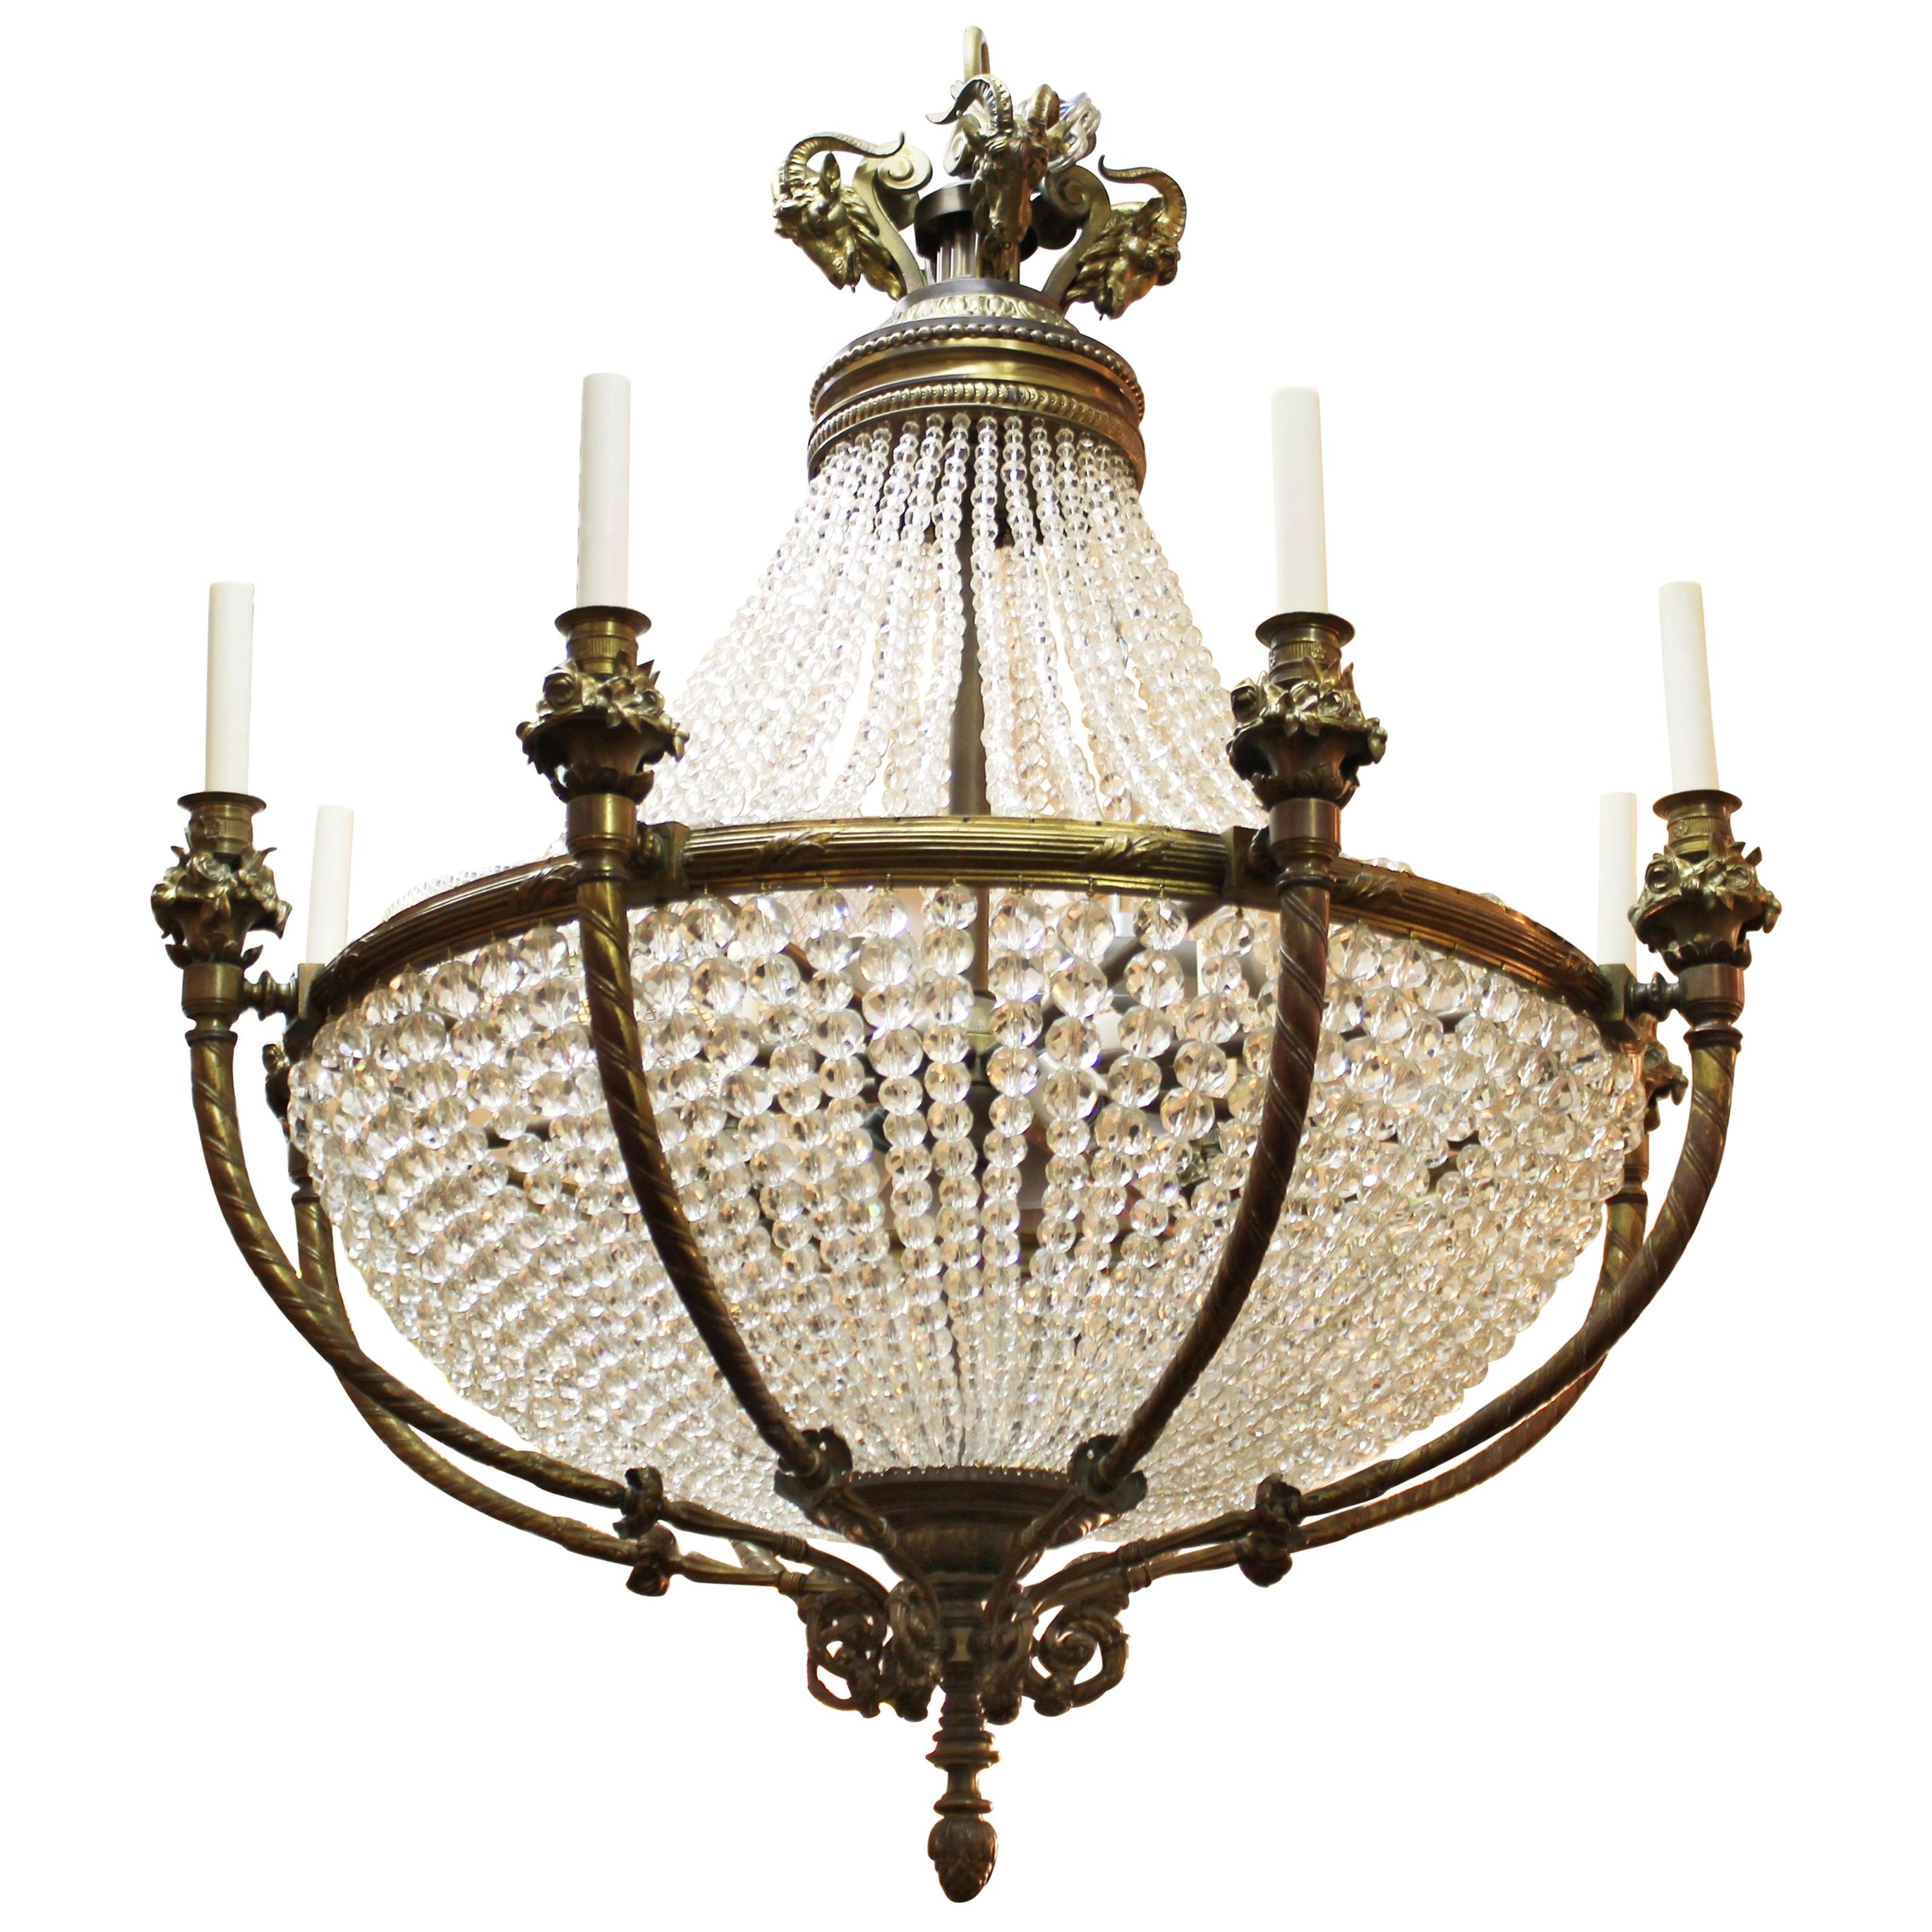 1890s chandeliers and pendants 108 for sale at 1stdibs